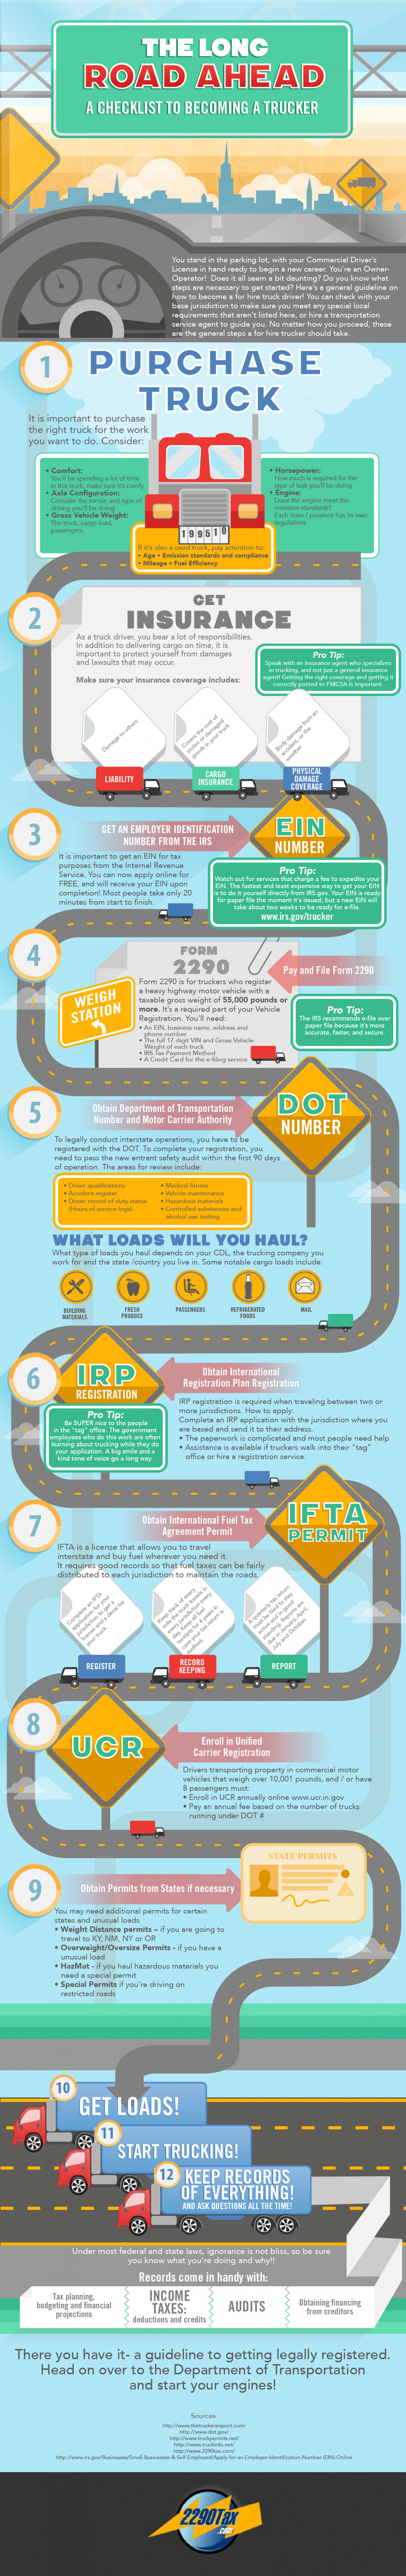 The Long Road Ahead - A Checklist To Becoming A Trucker Infographic